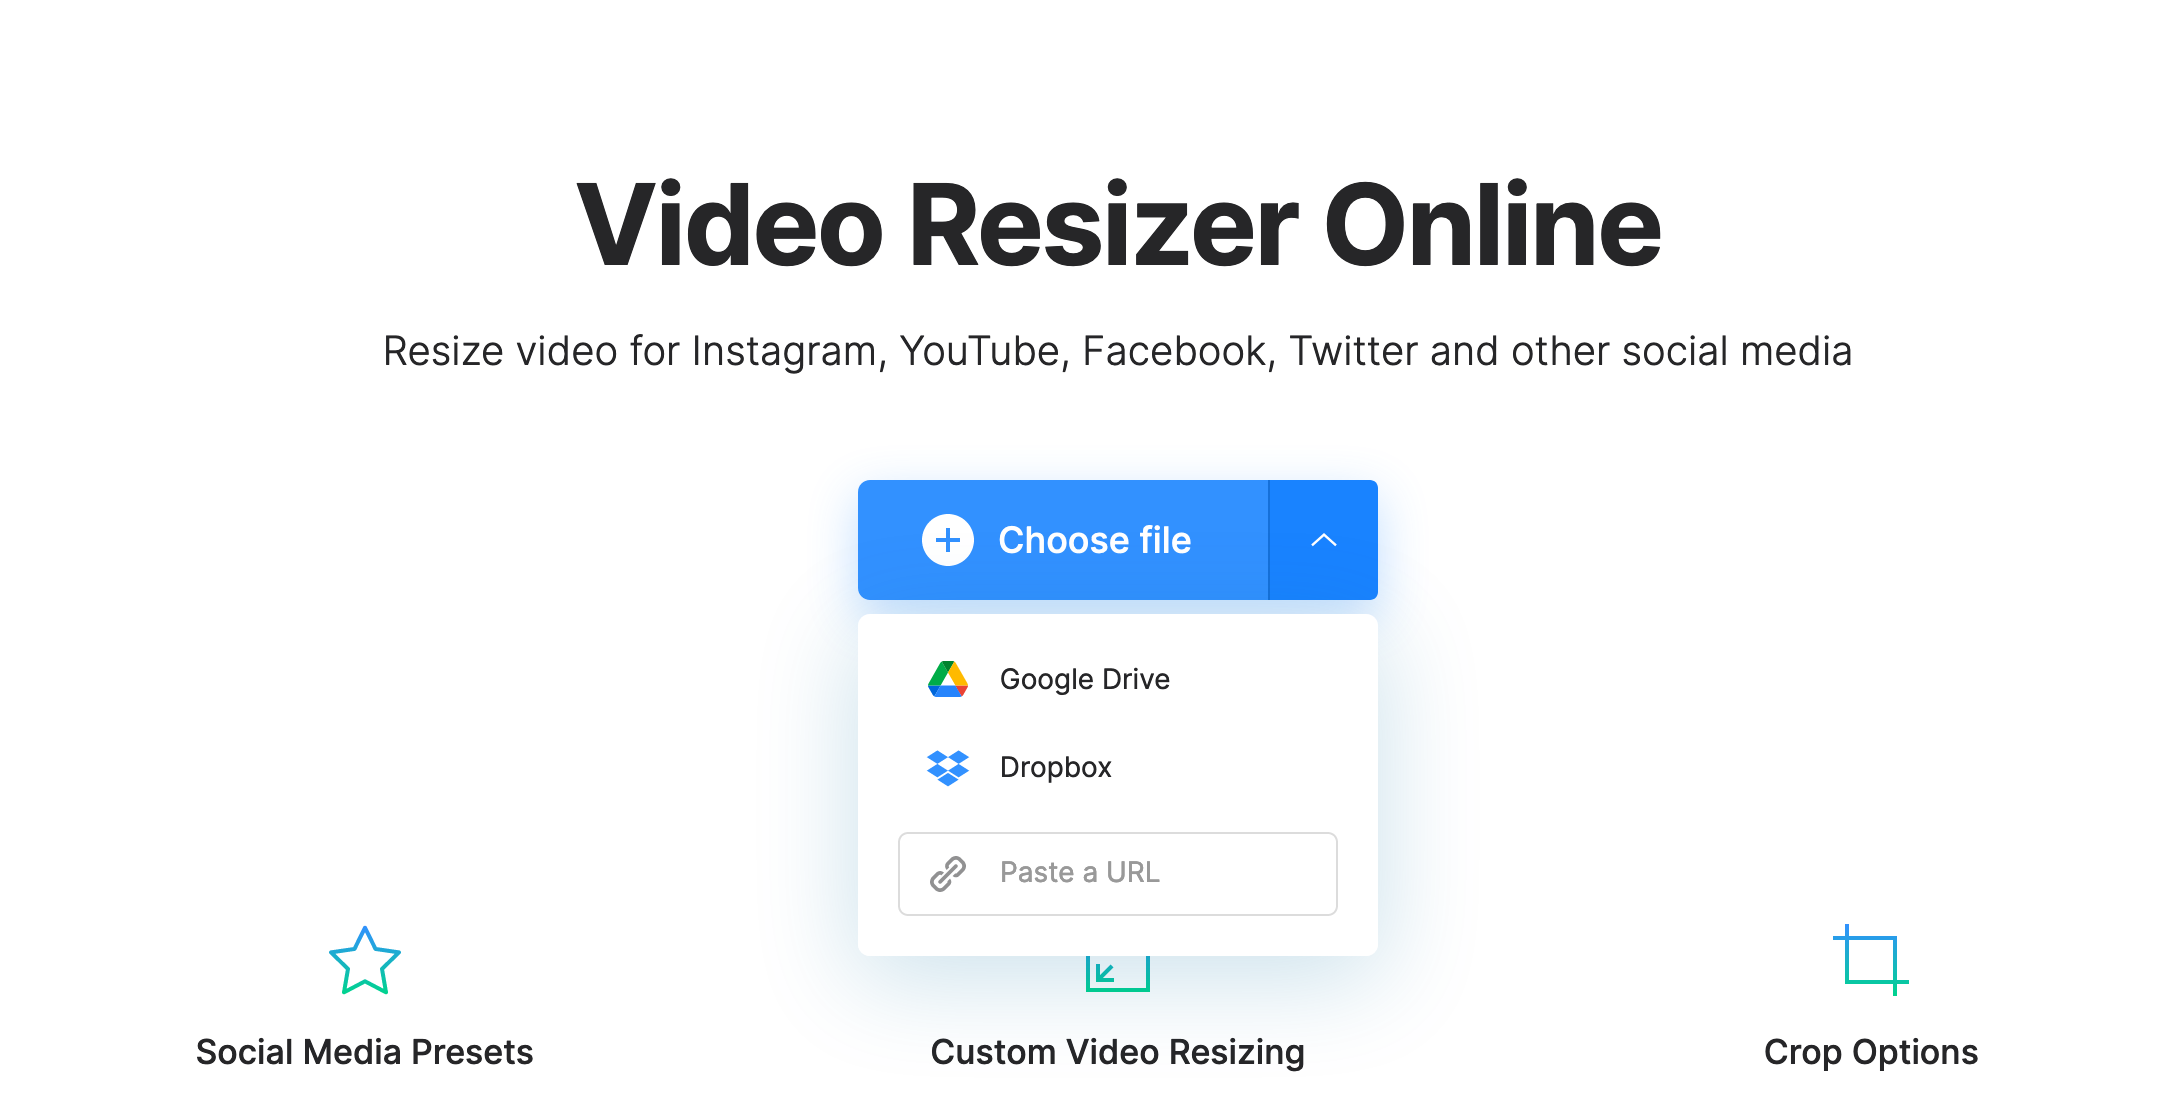 Upload video with 2K resolution